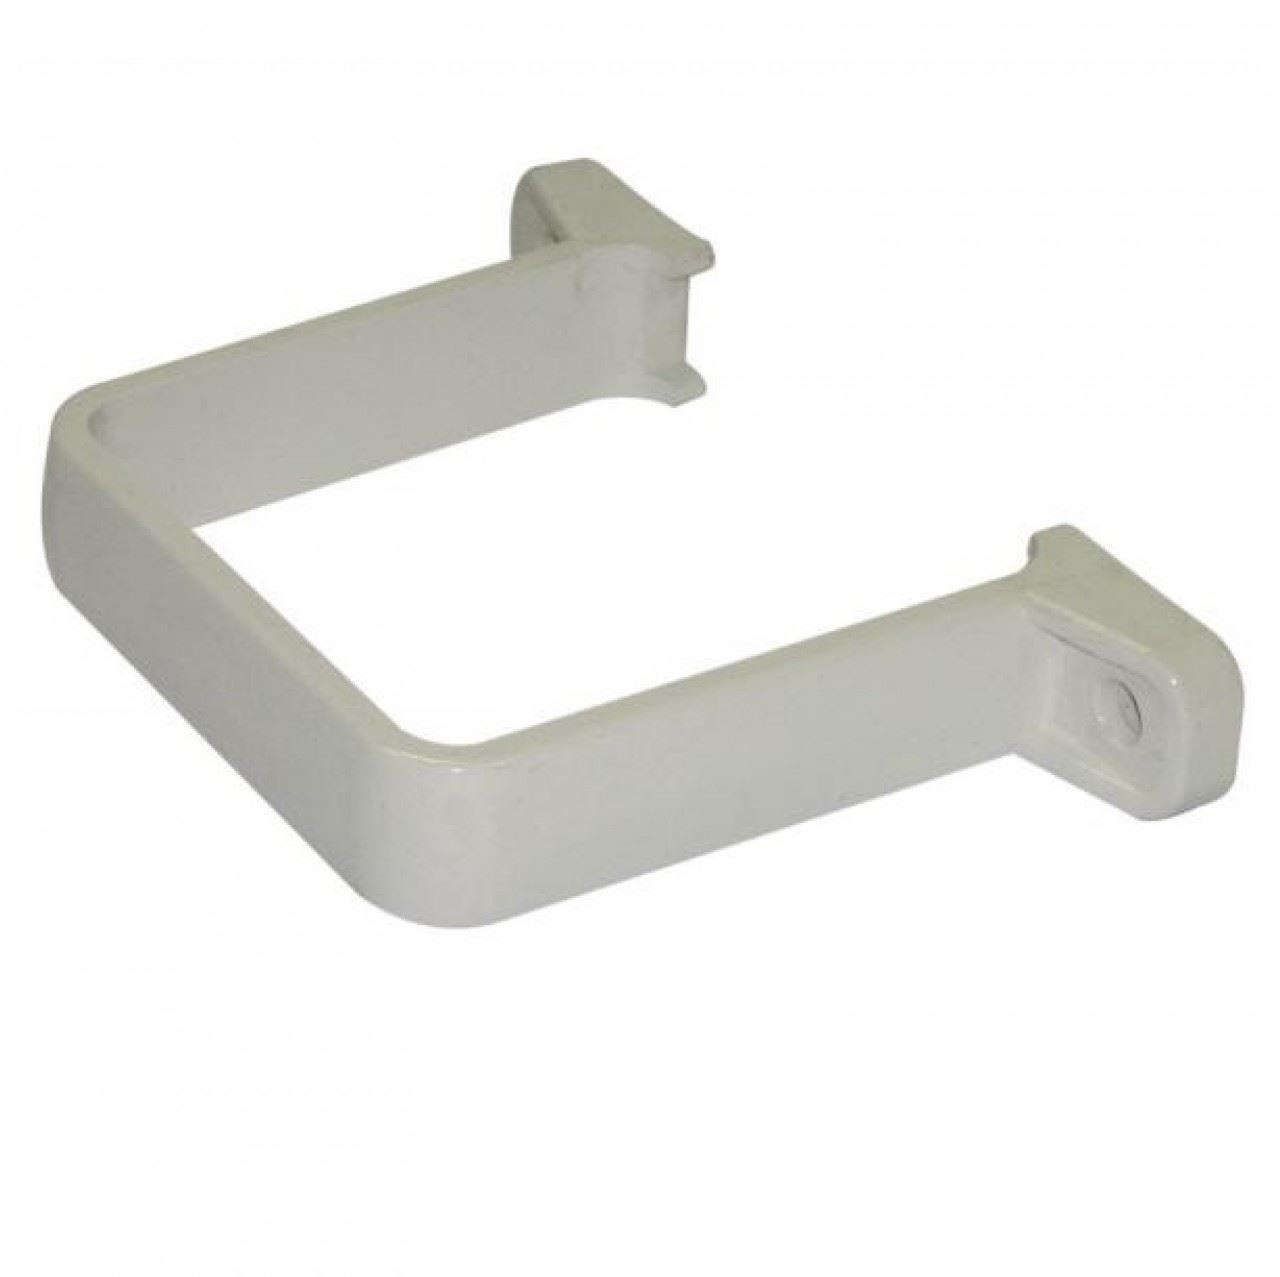 FLOPLAST 65mm Square Flush Down Pipe Clip - White - Bag of 2